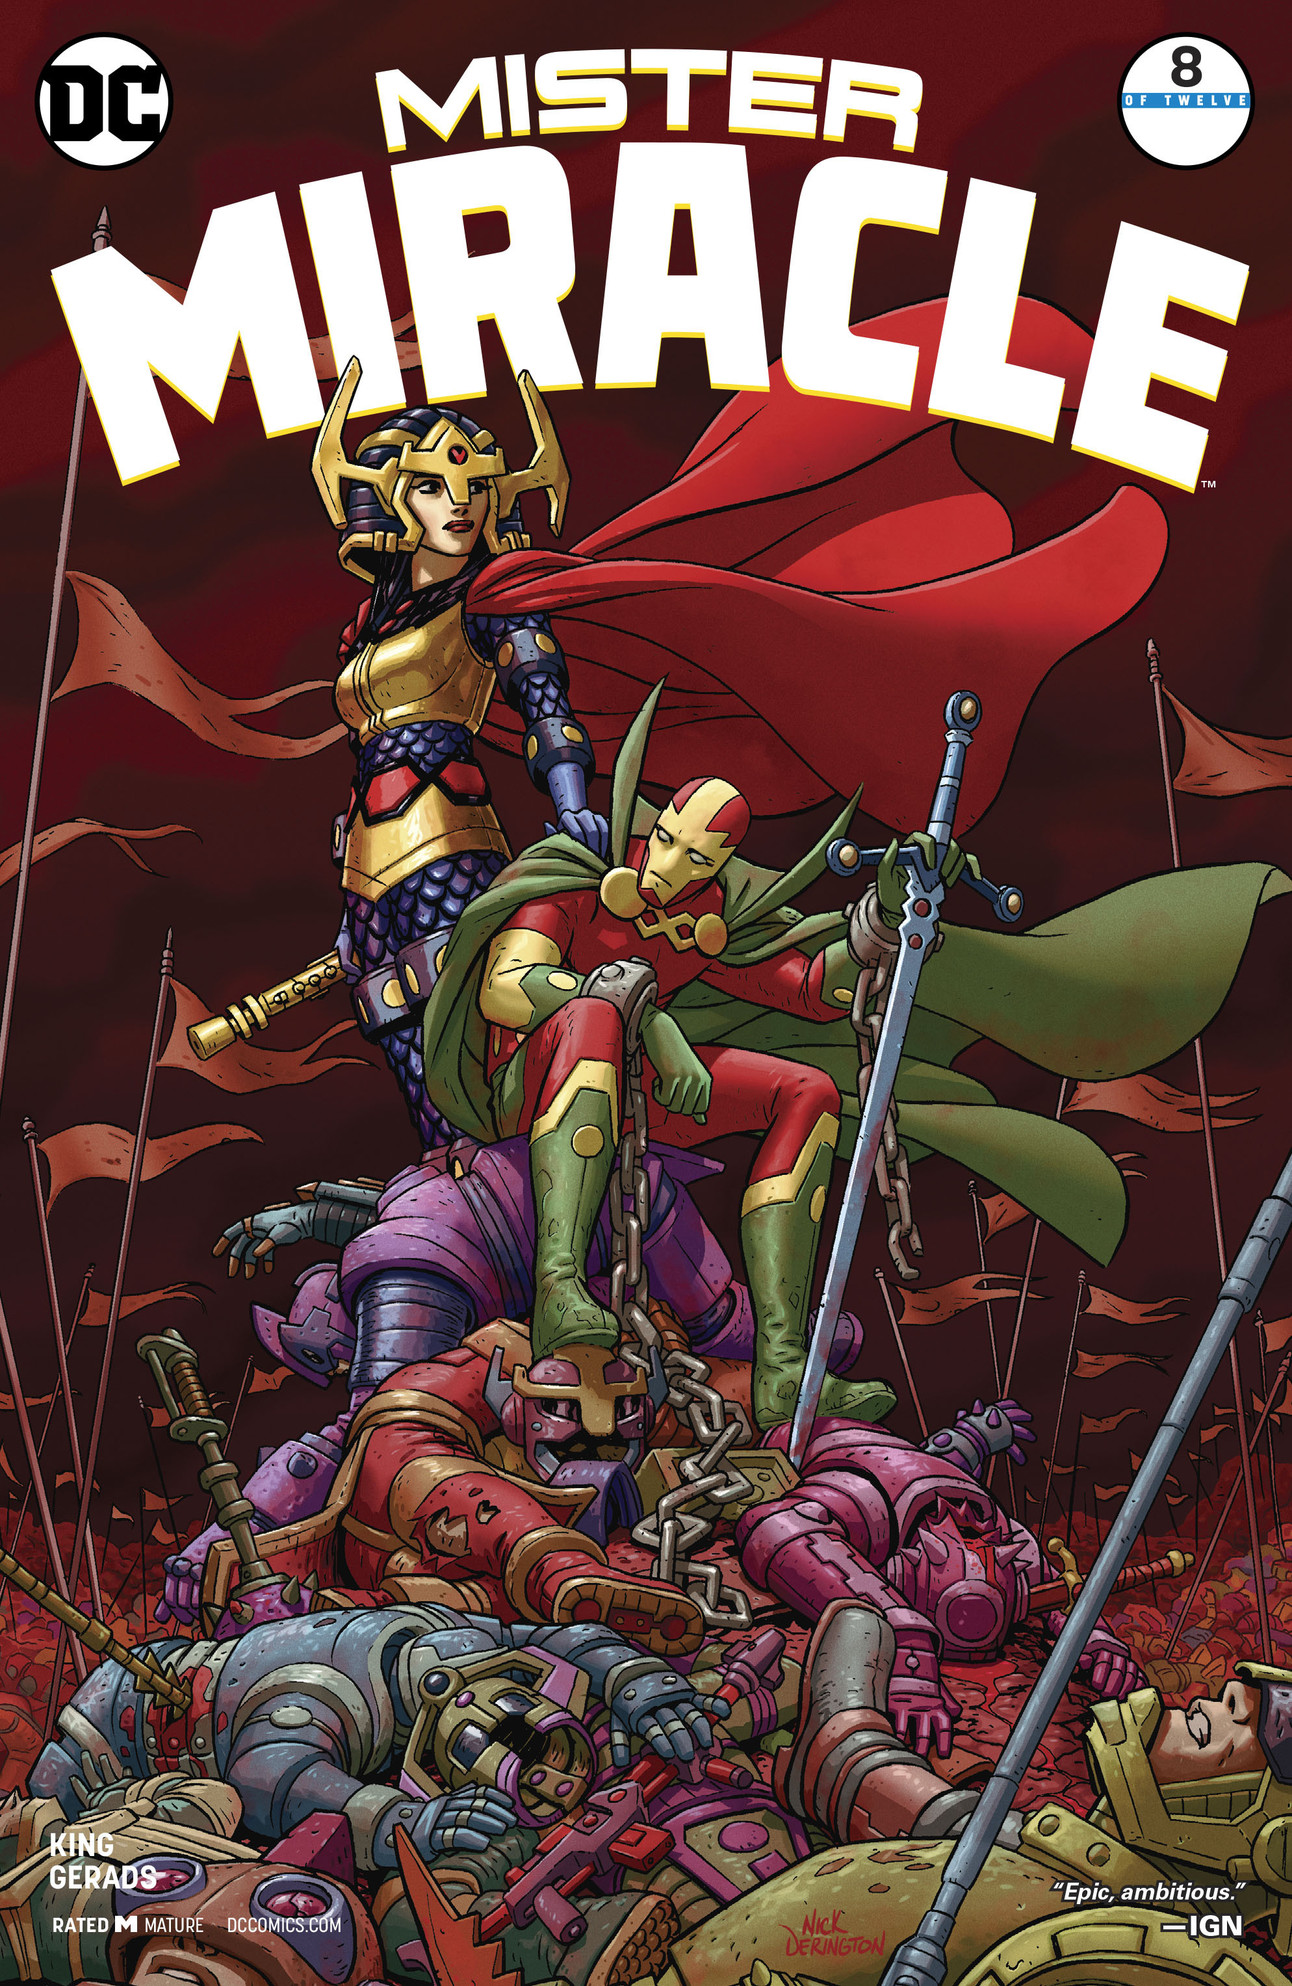 Mister Miracle #8 Cover by Nick Derington